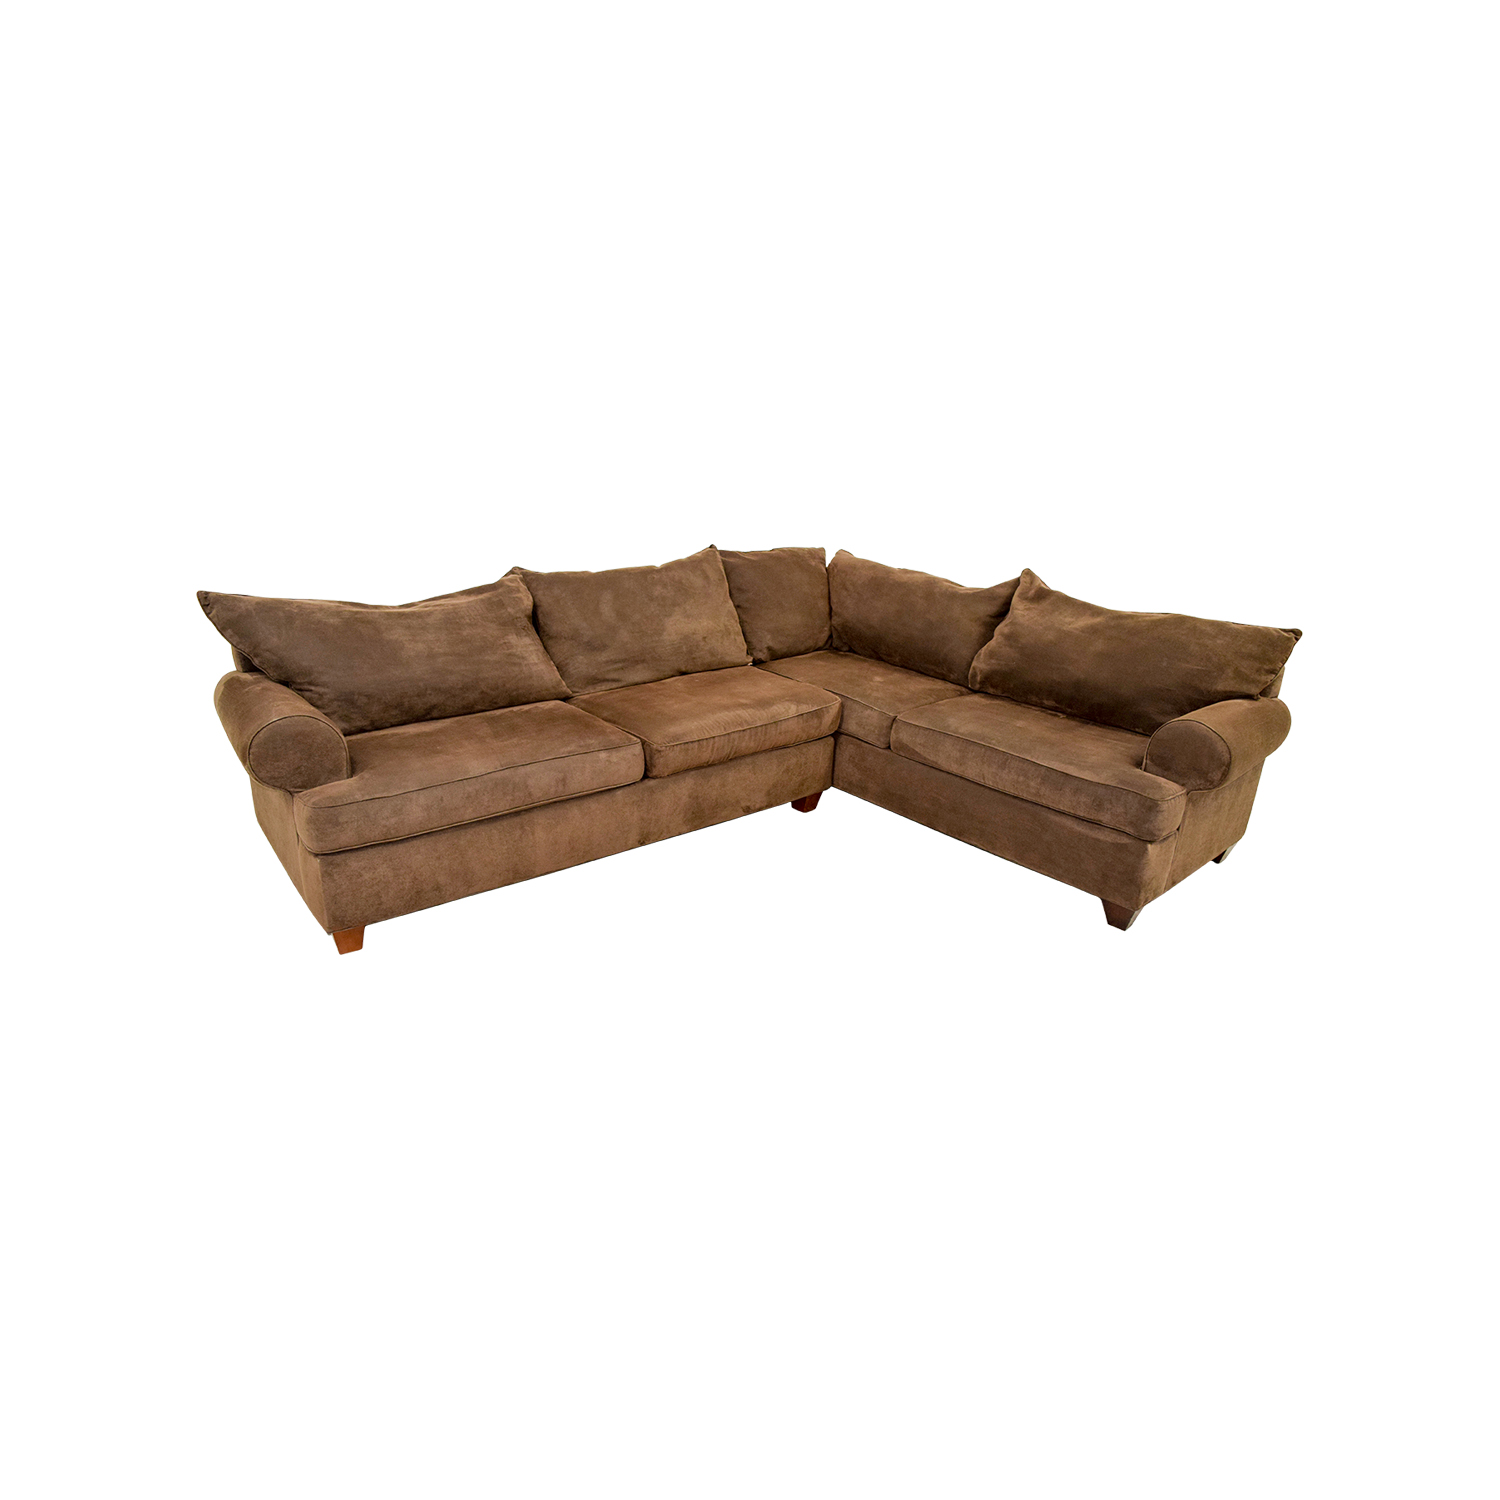 Brown Corduroy L-Shaped Sectional Couch nj